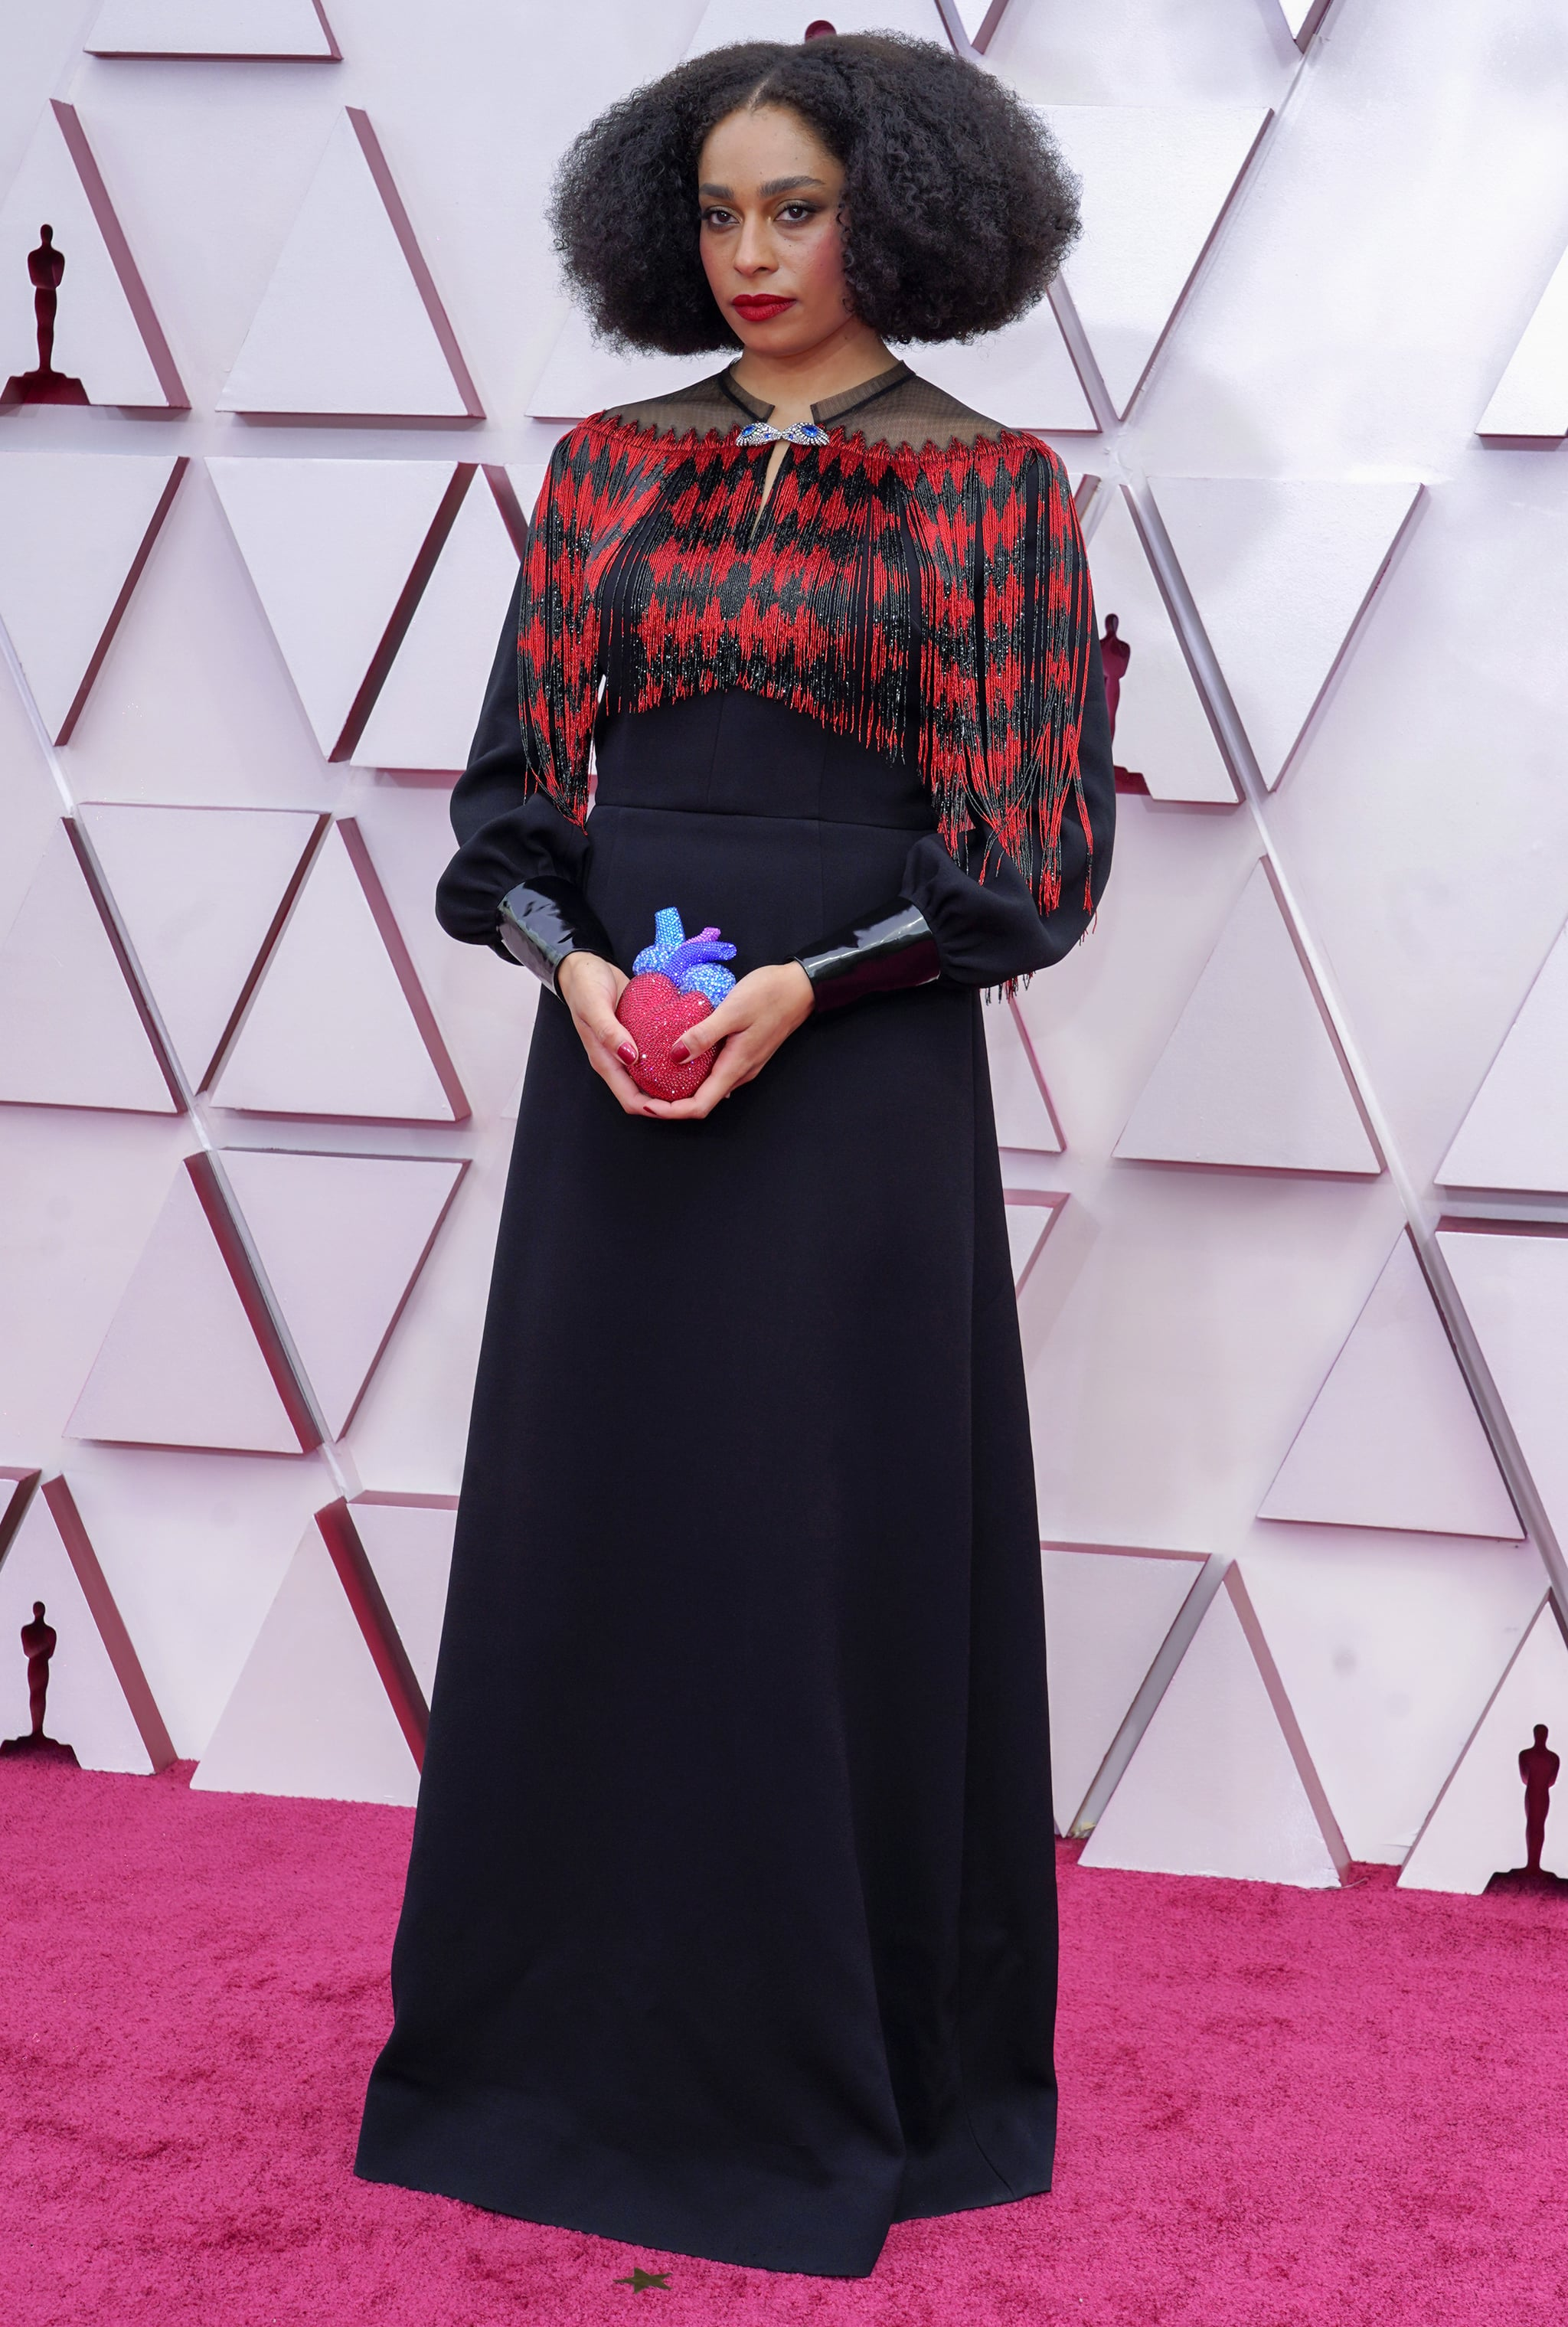 Celeste Waite at the 2021 Oscars | We'd Like to Thank the Academy For Letting Us Witness These 2021 Oscars Red Carpet Looks | POPSUGAR Fashion Photo 19